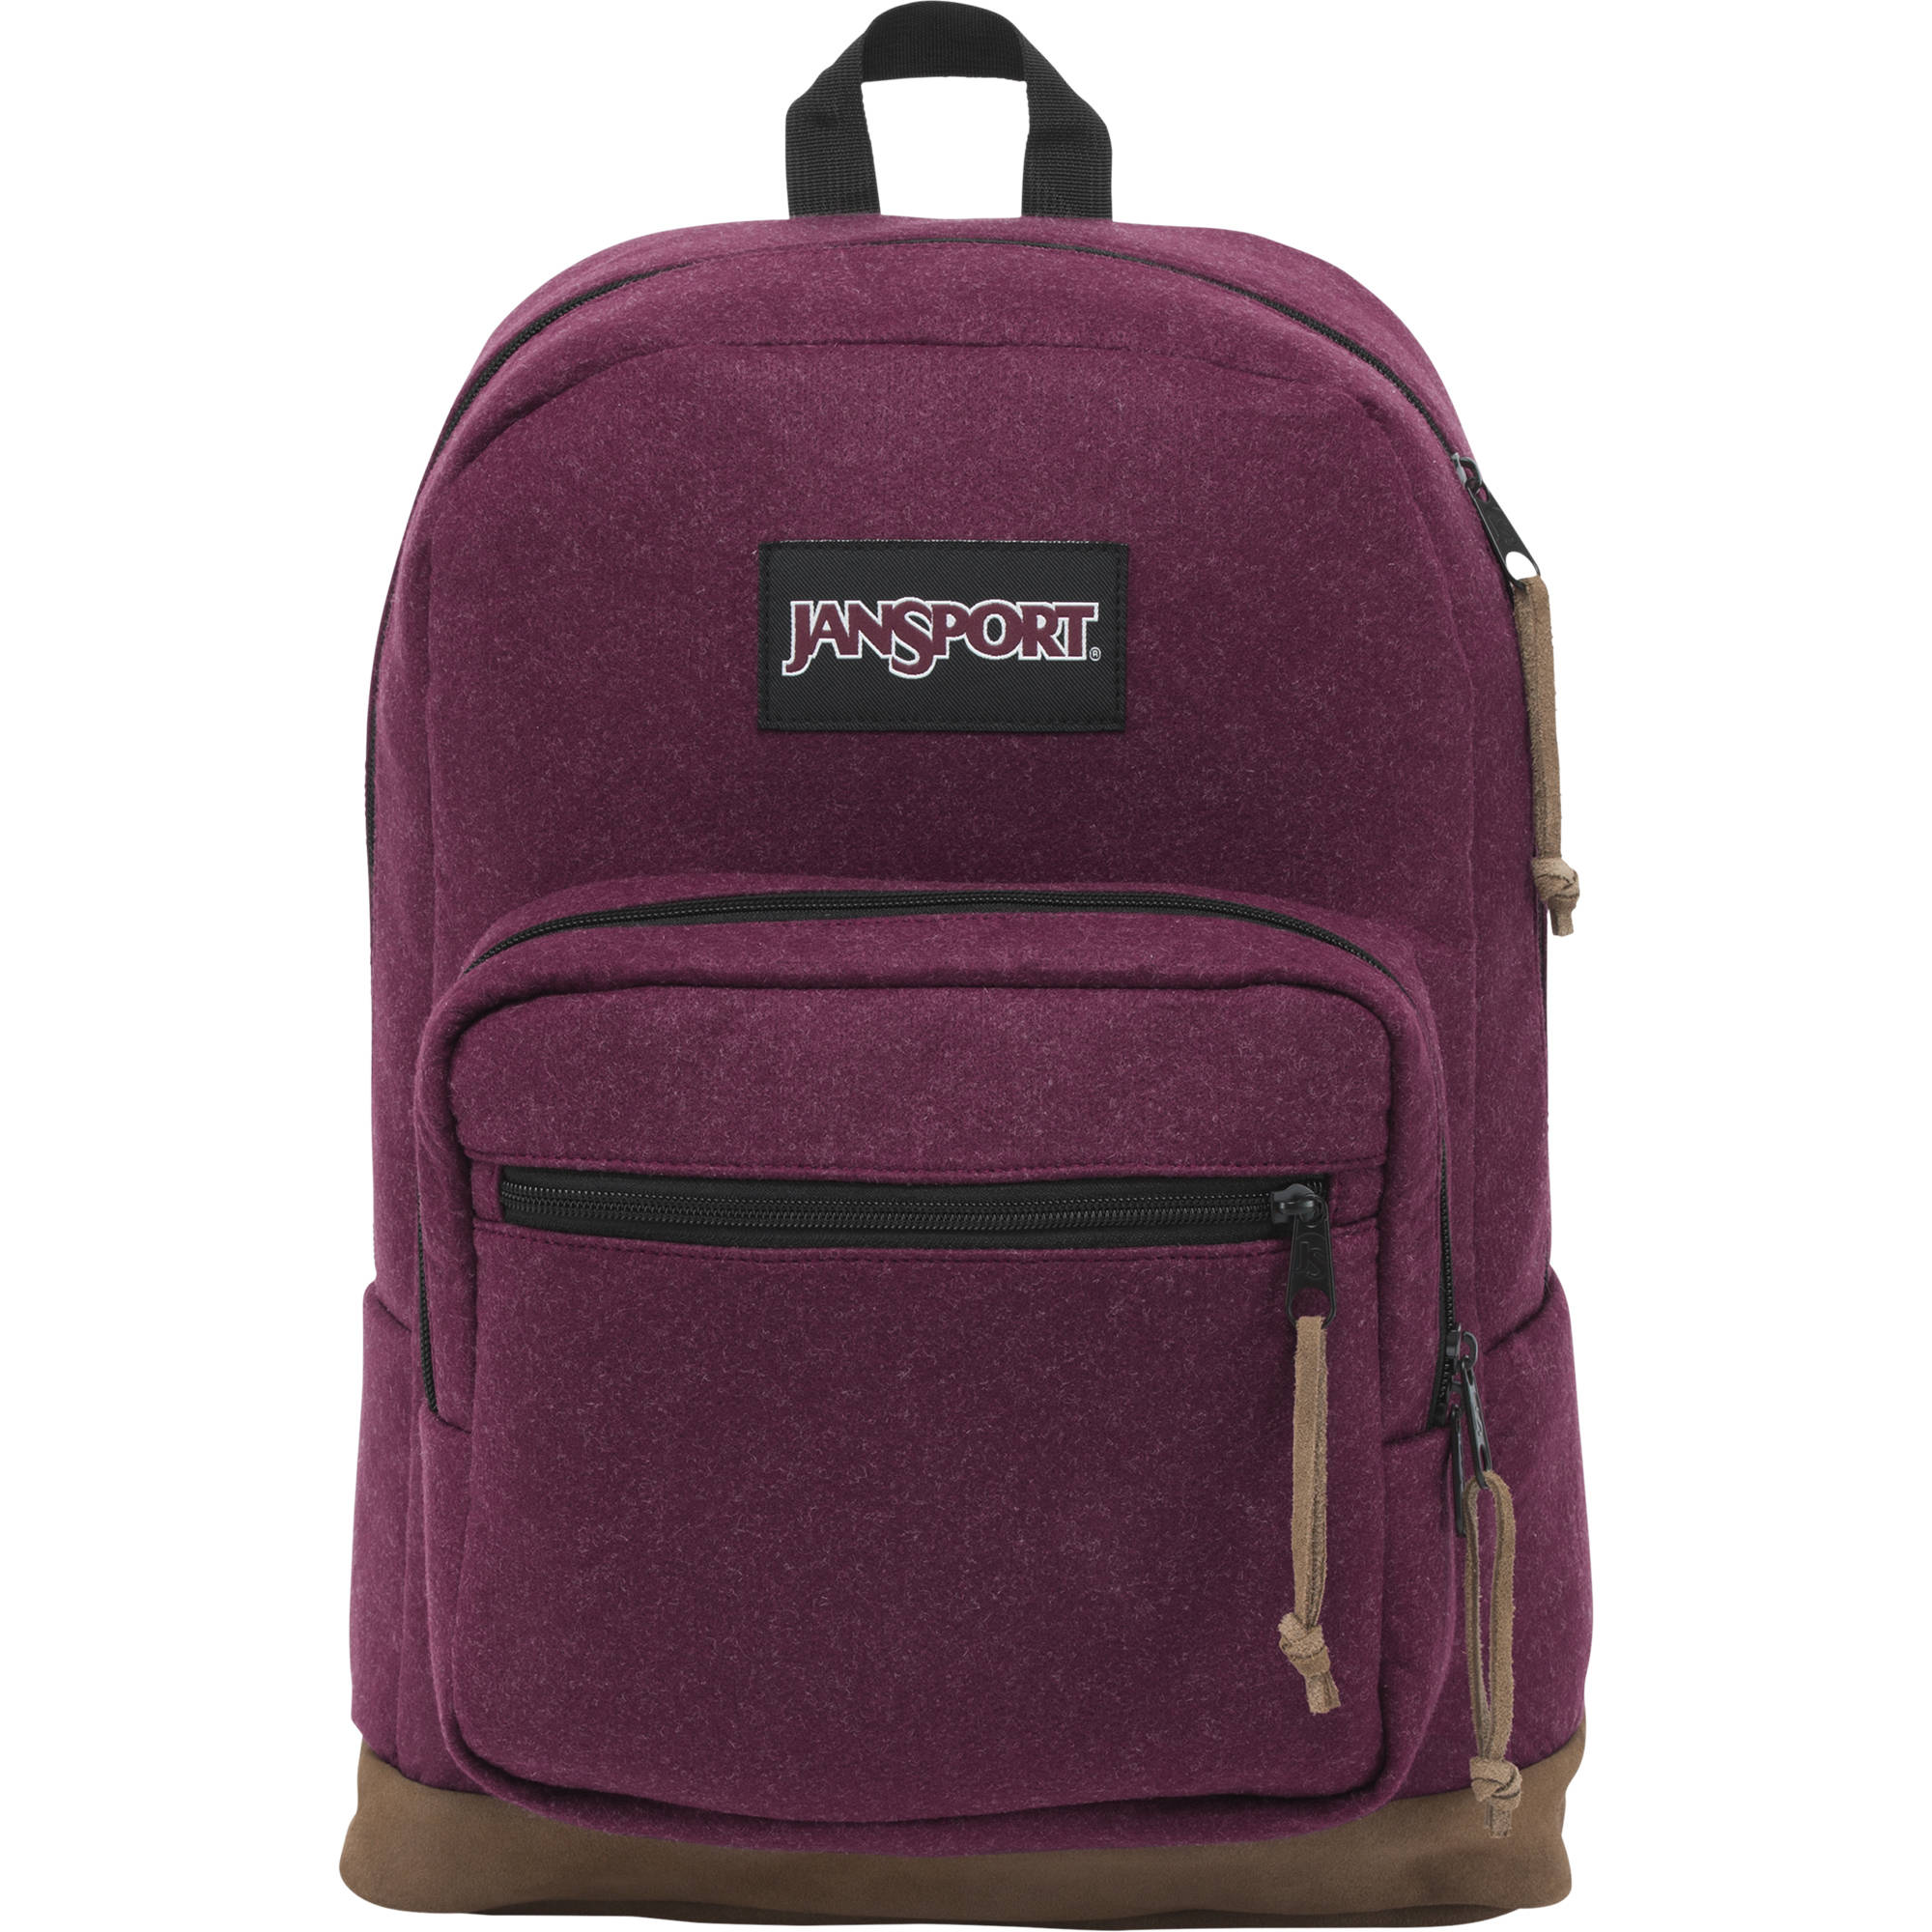 Jansport Maroon Backpack iIIVpkrN